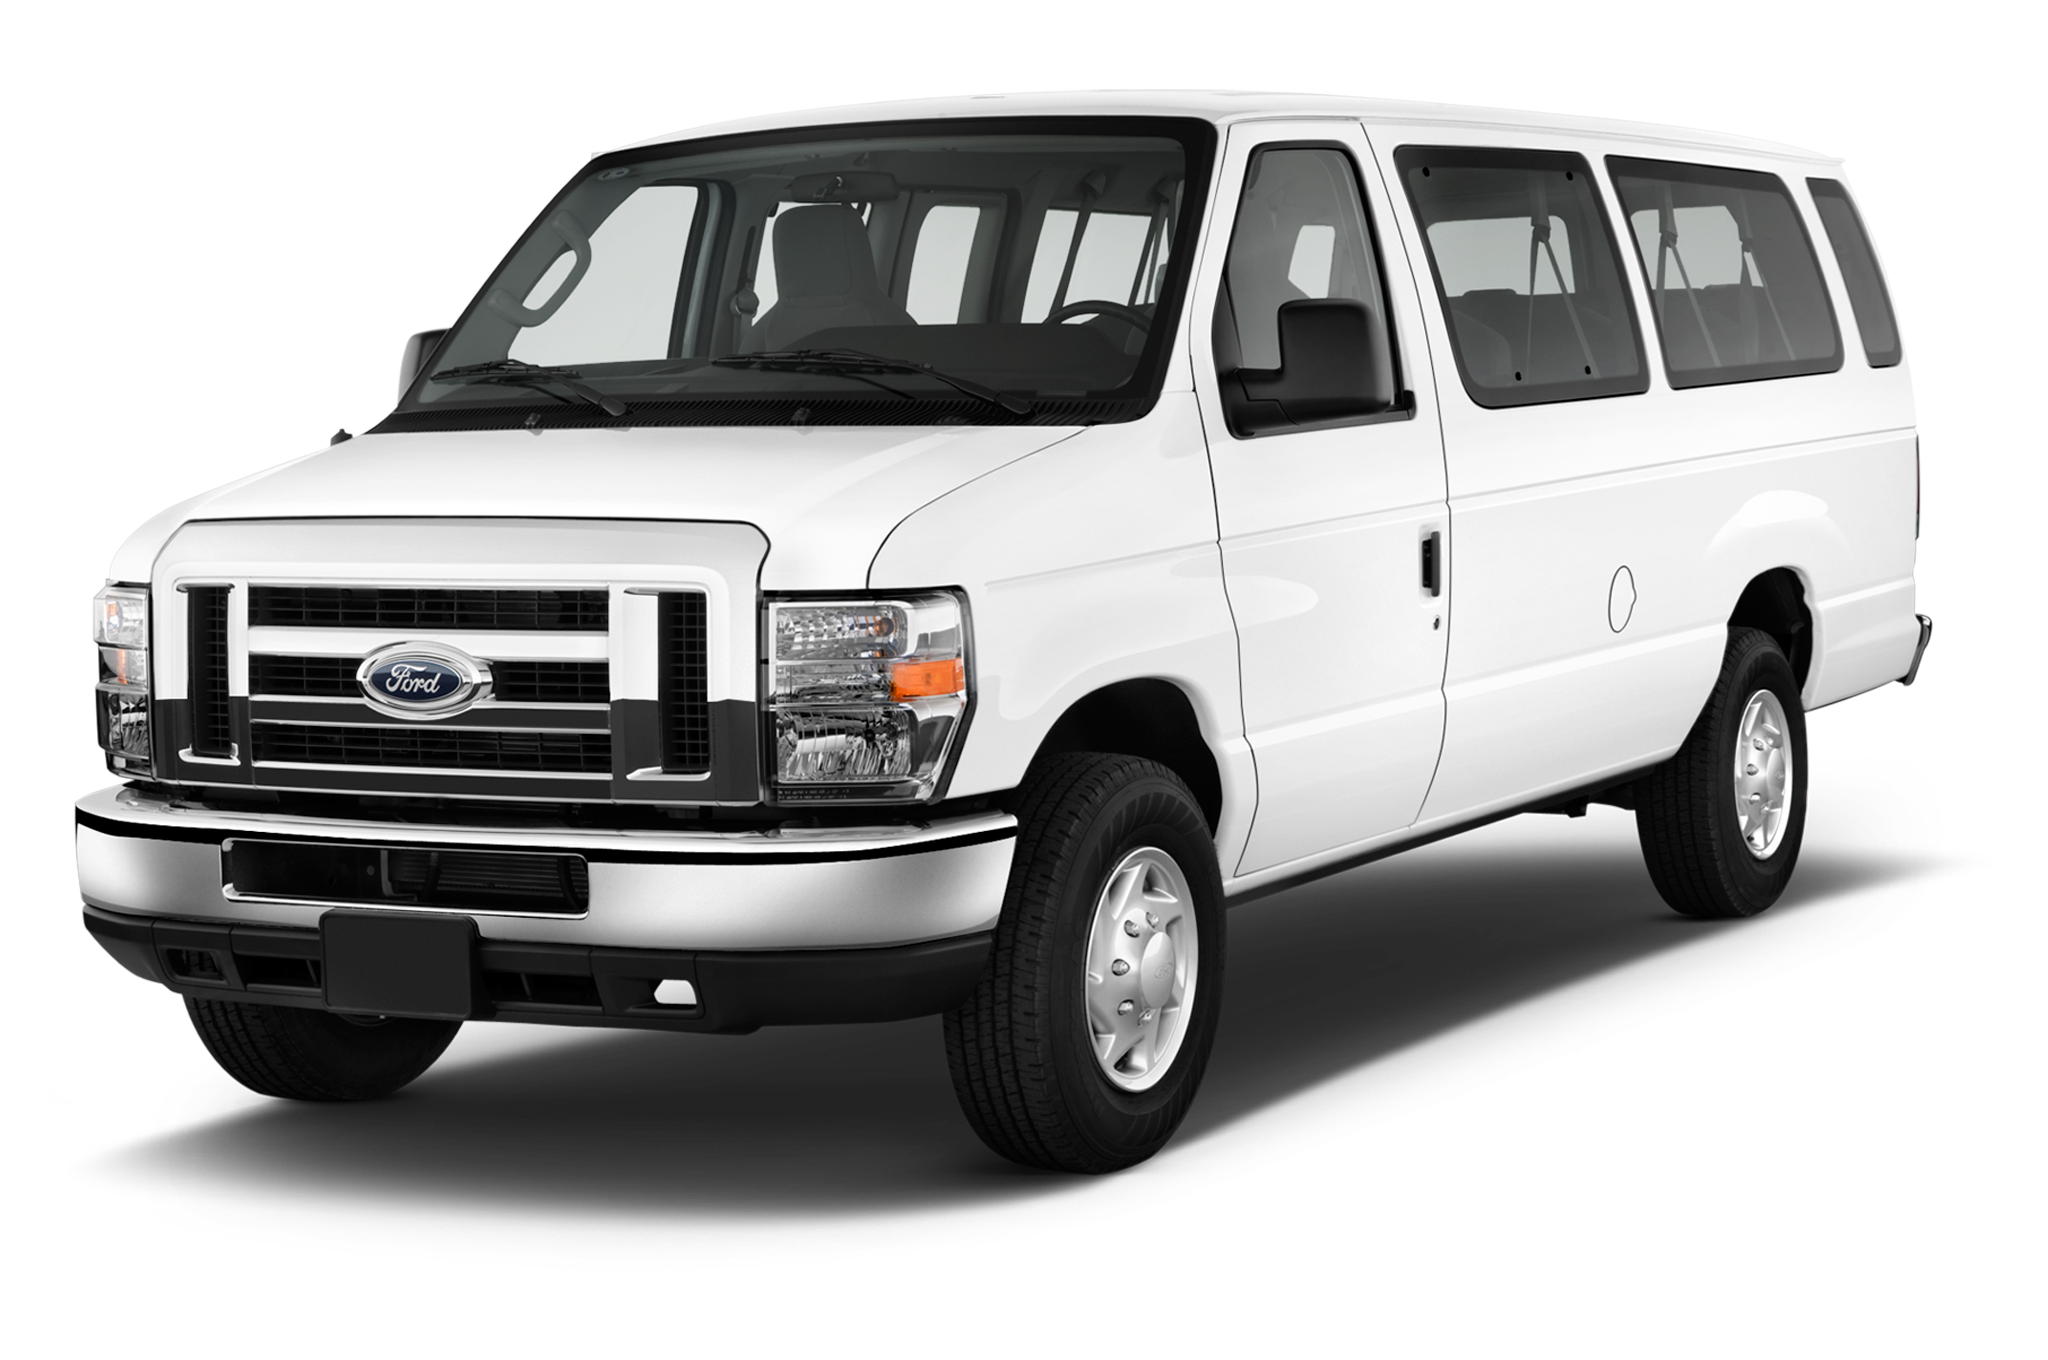 coast-shuttle-van-private-shared-ride-southern-california